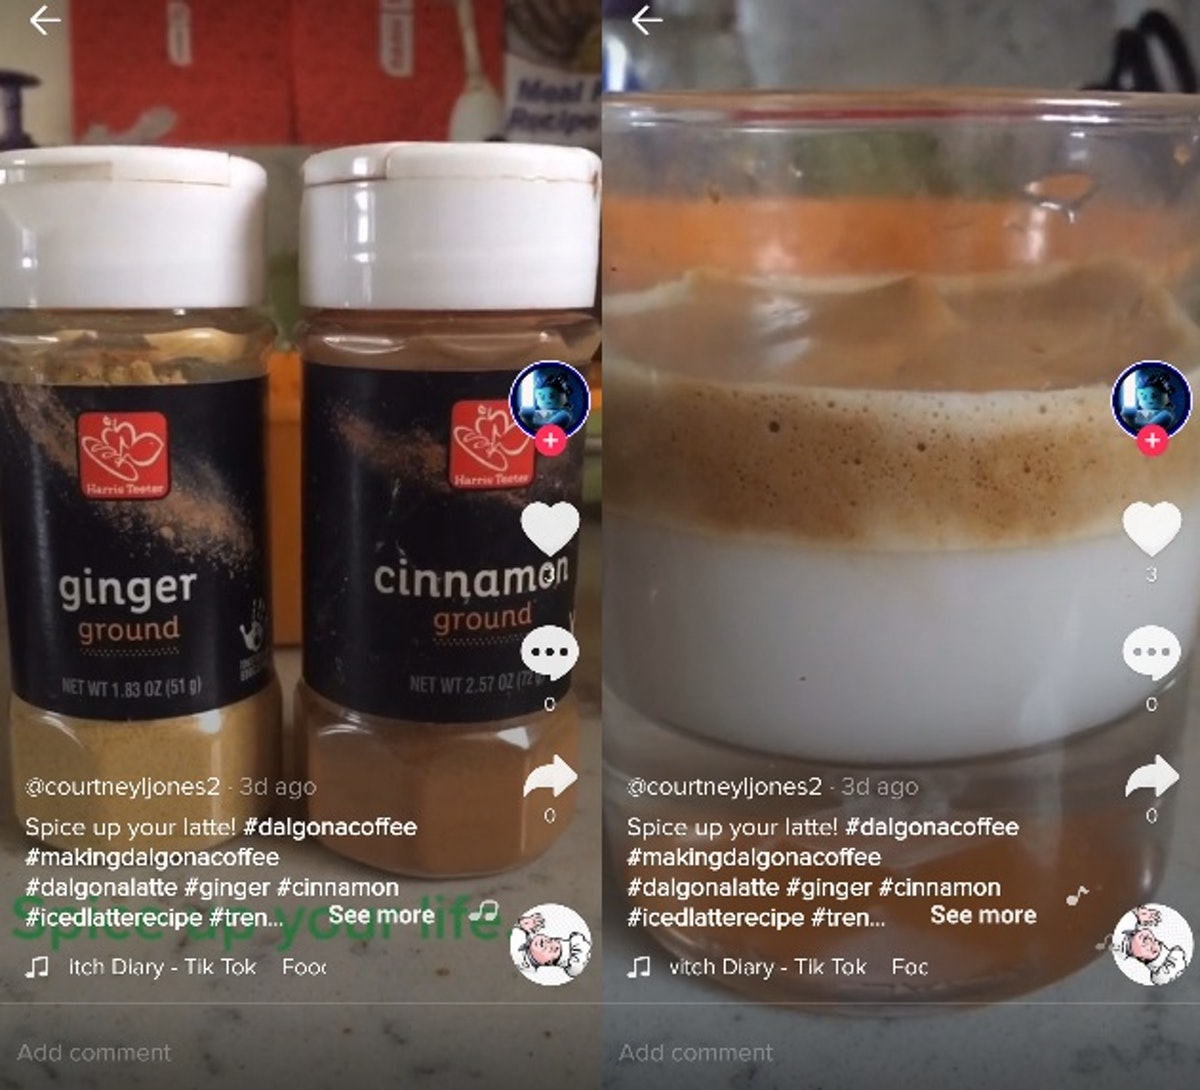 These are the best Dalgona coffee hacks making rounds on social media.